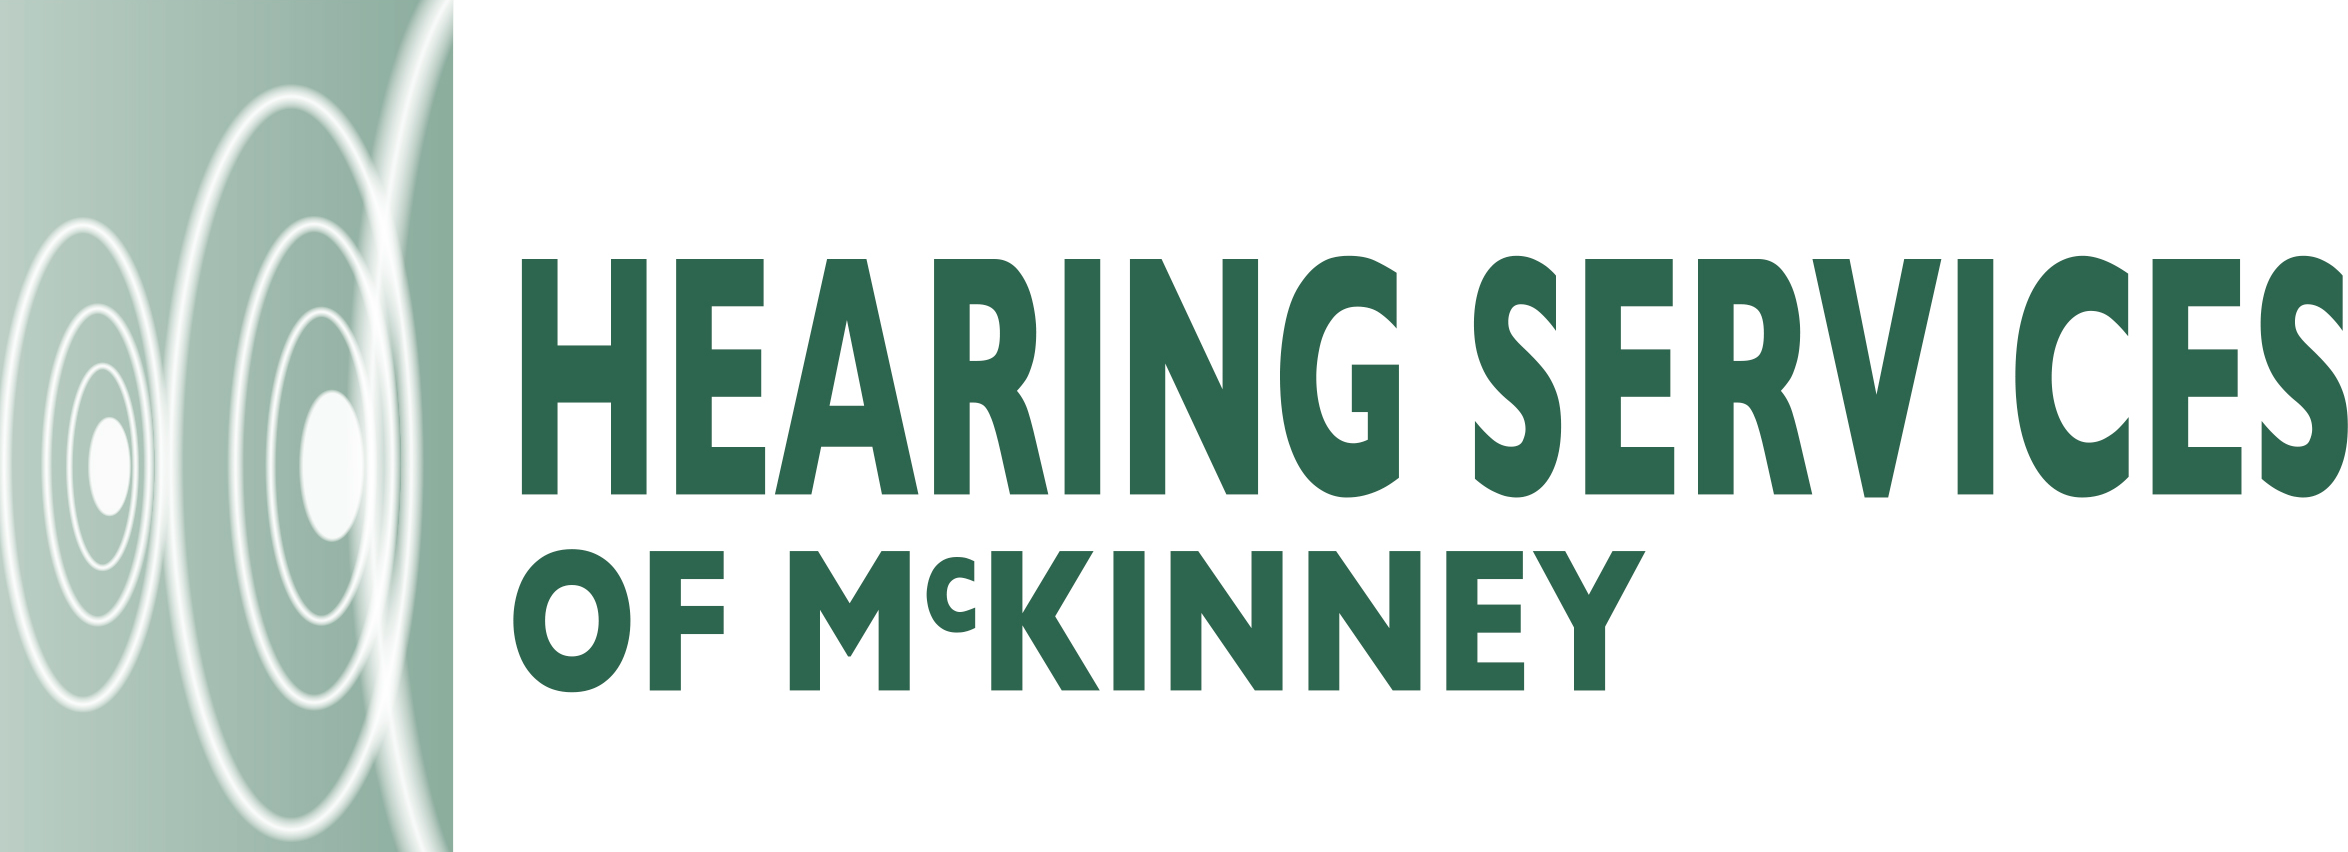 Hearing Services of McKinney